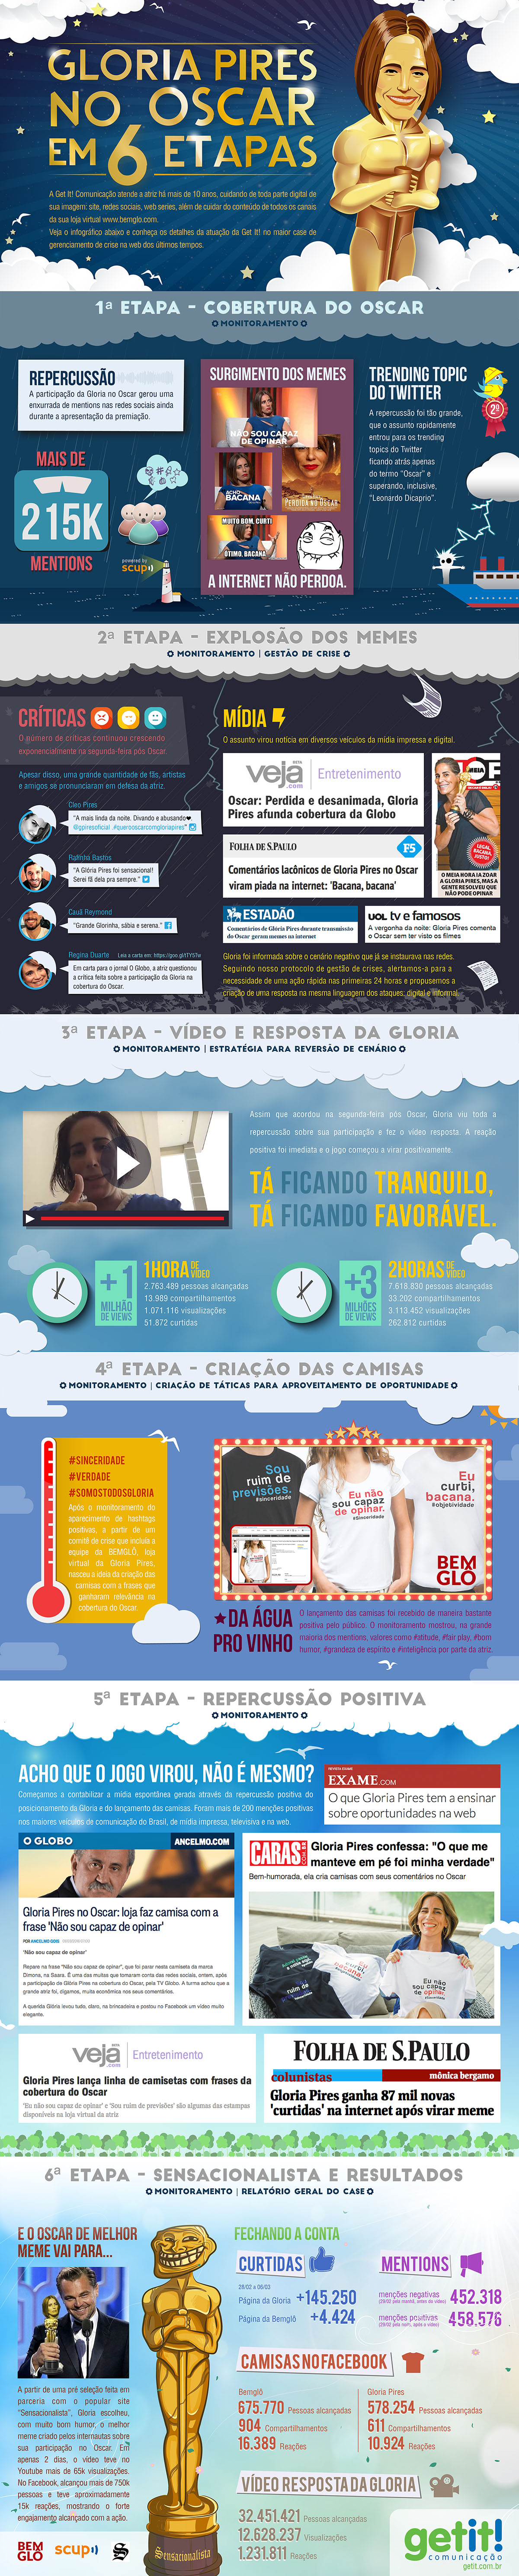 Infográfico Gloria Pires no Oscar - Get It!